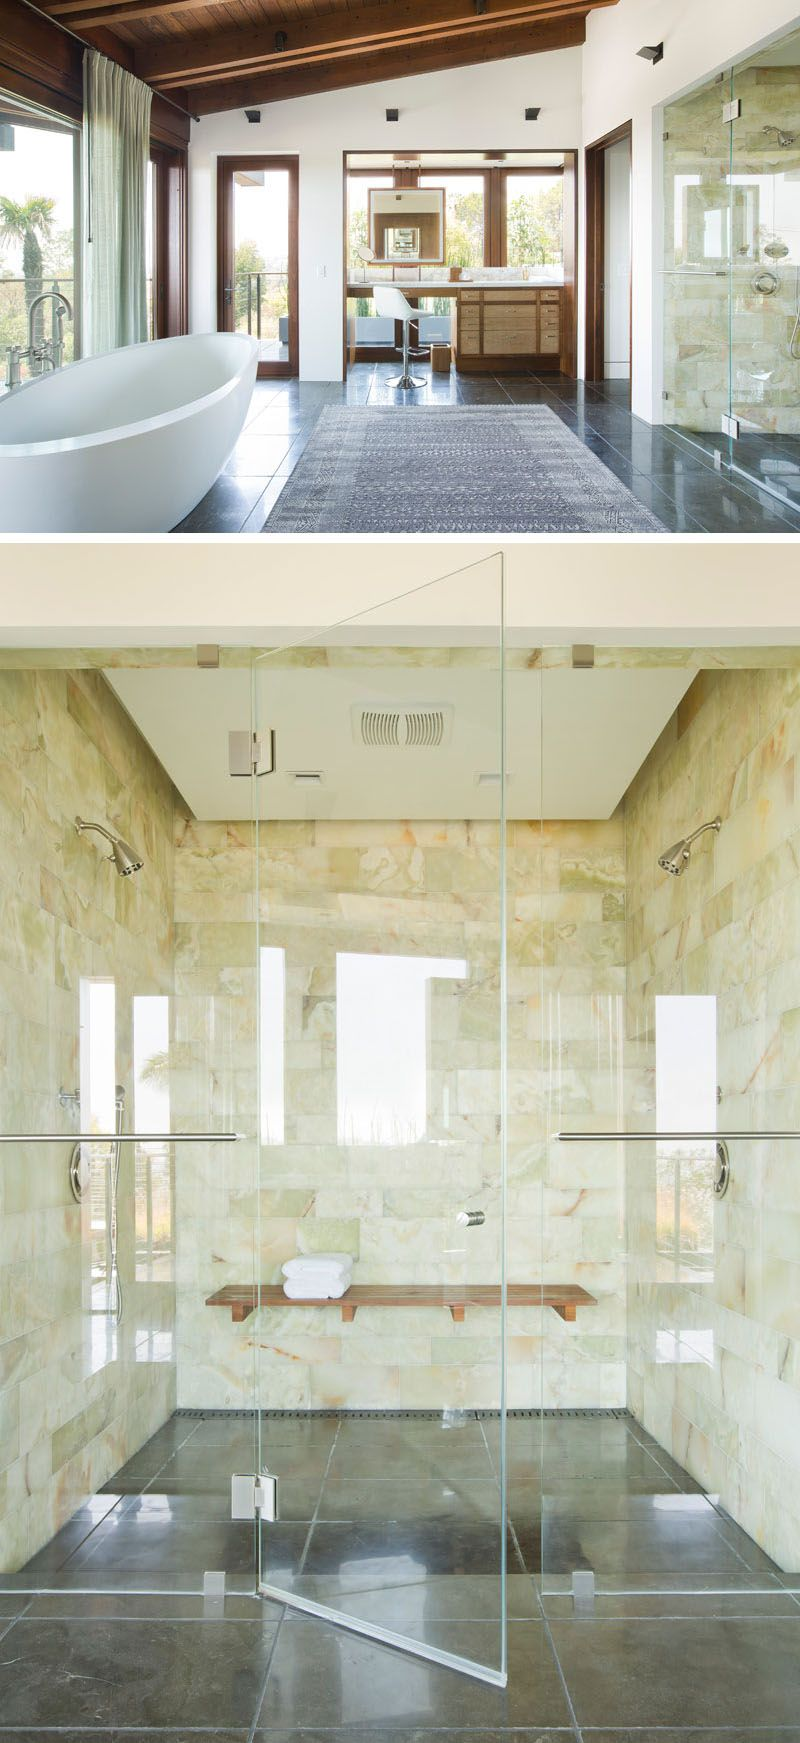 This New Wood And Stone Clad Home Sits Among The Santa Monica Mountains Of California Bathroom Design Small Best Bathroom Designs Small Bathroom Remodel